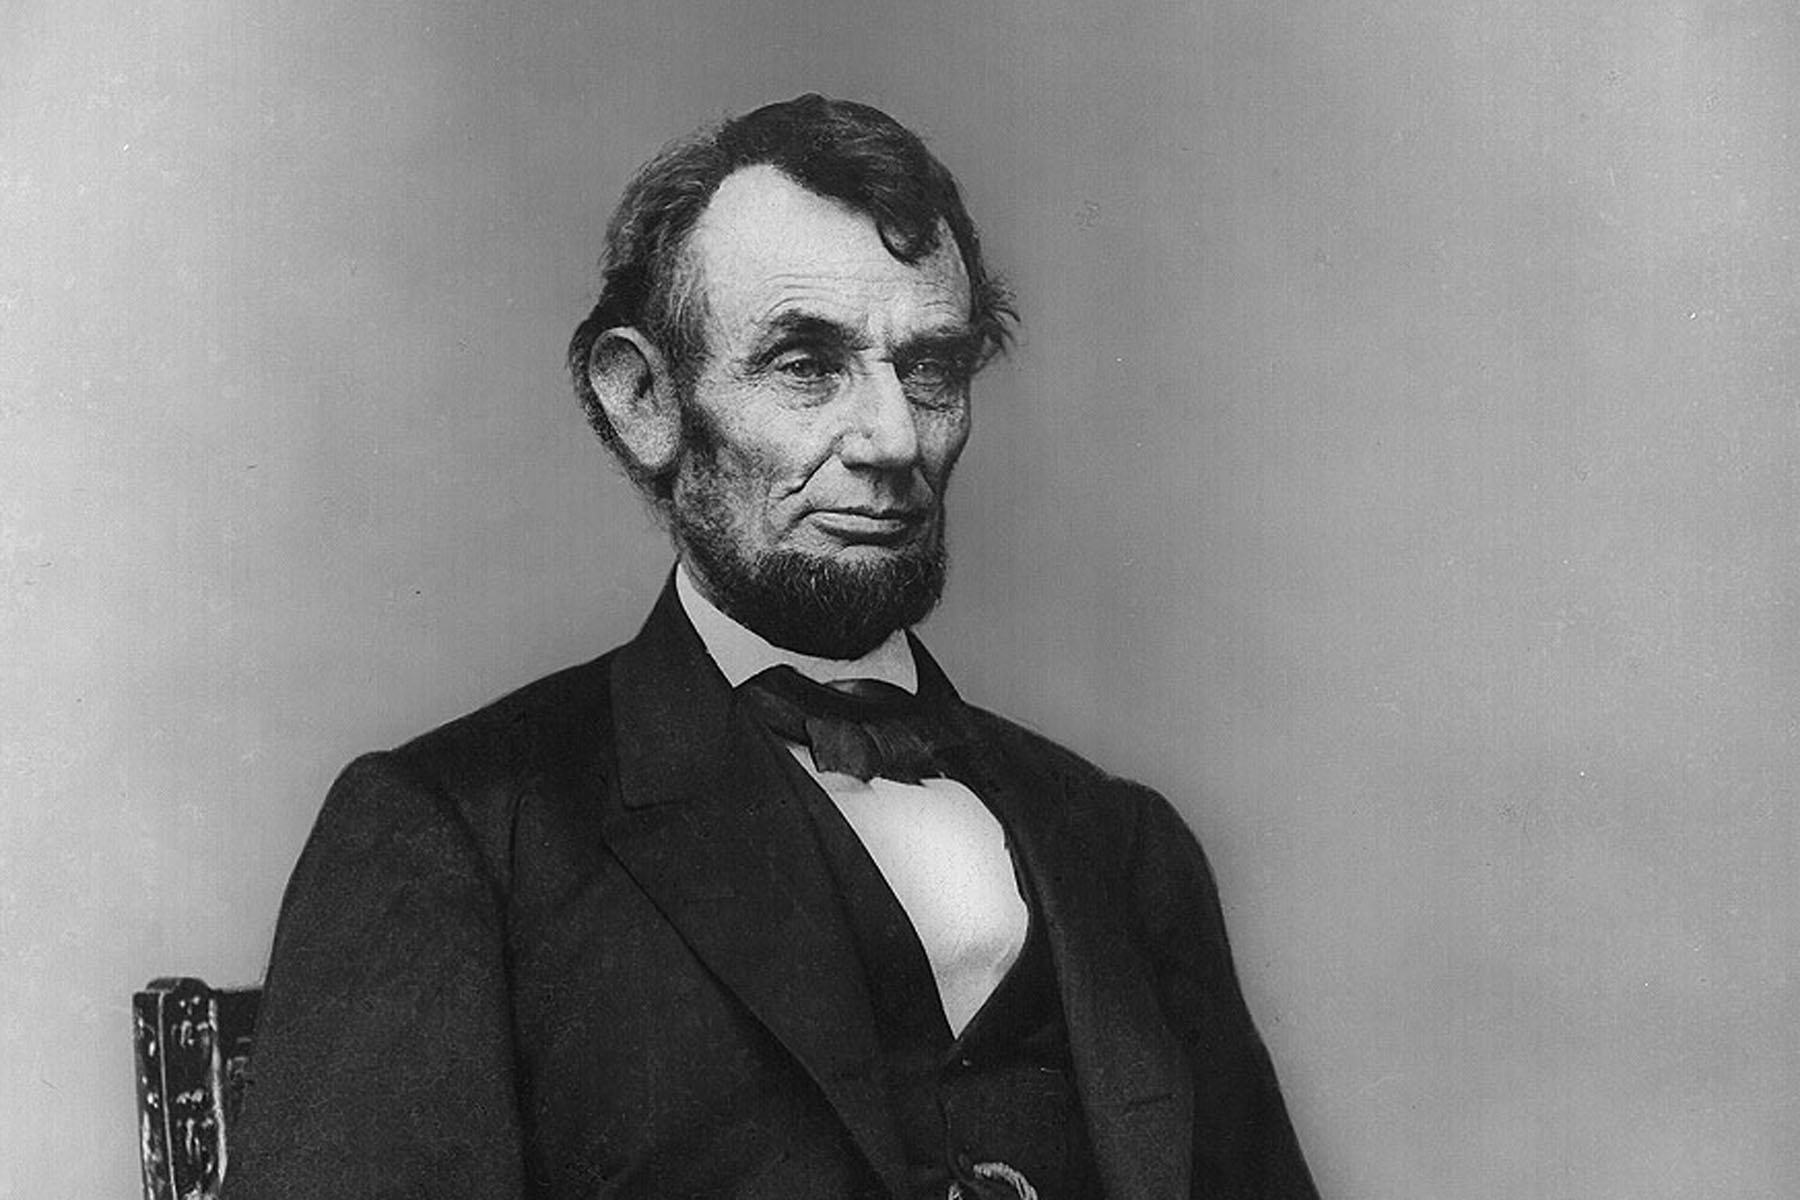 Lincoln S Looks Never Hindered His Approach To Life Or Politics Usc News